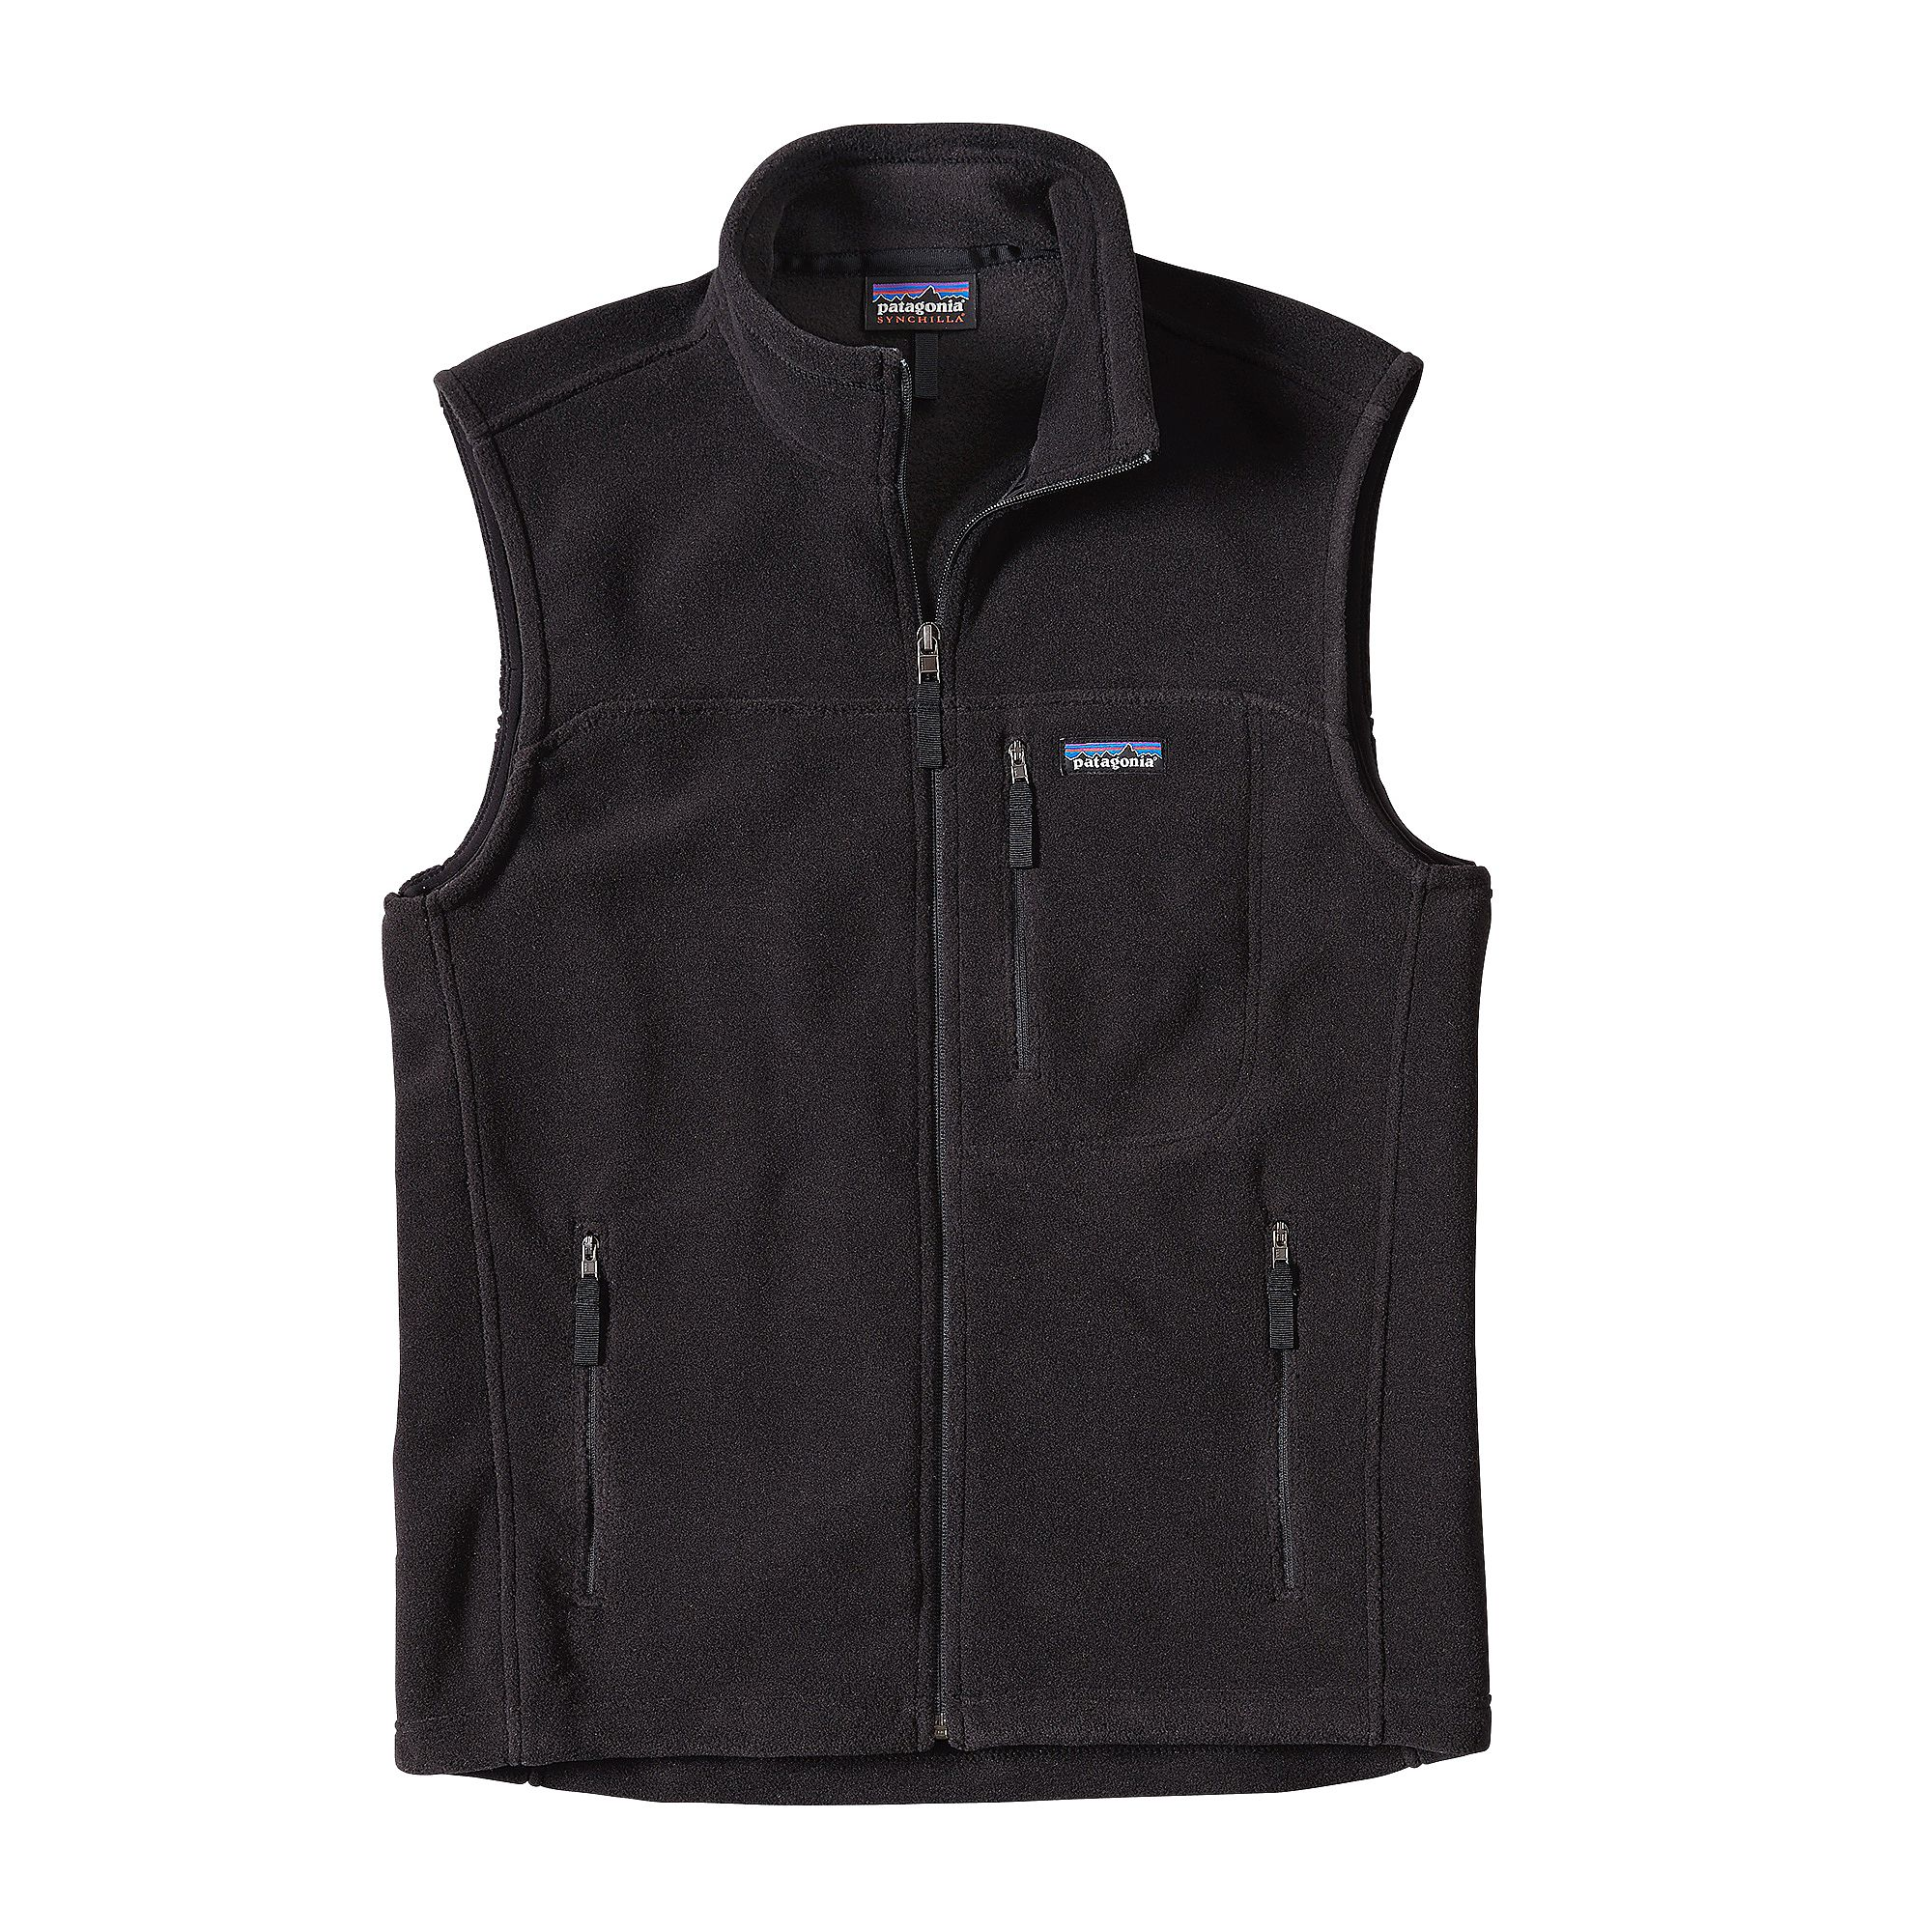 PATAGONIA MEN'S CLASSIC SYNCH VEST (23010)